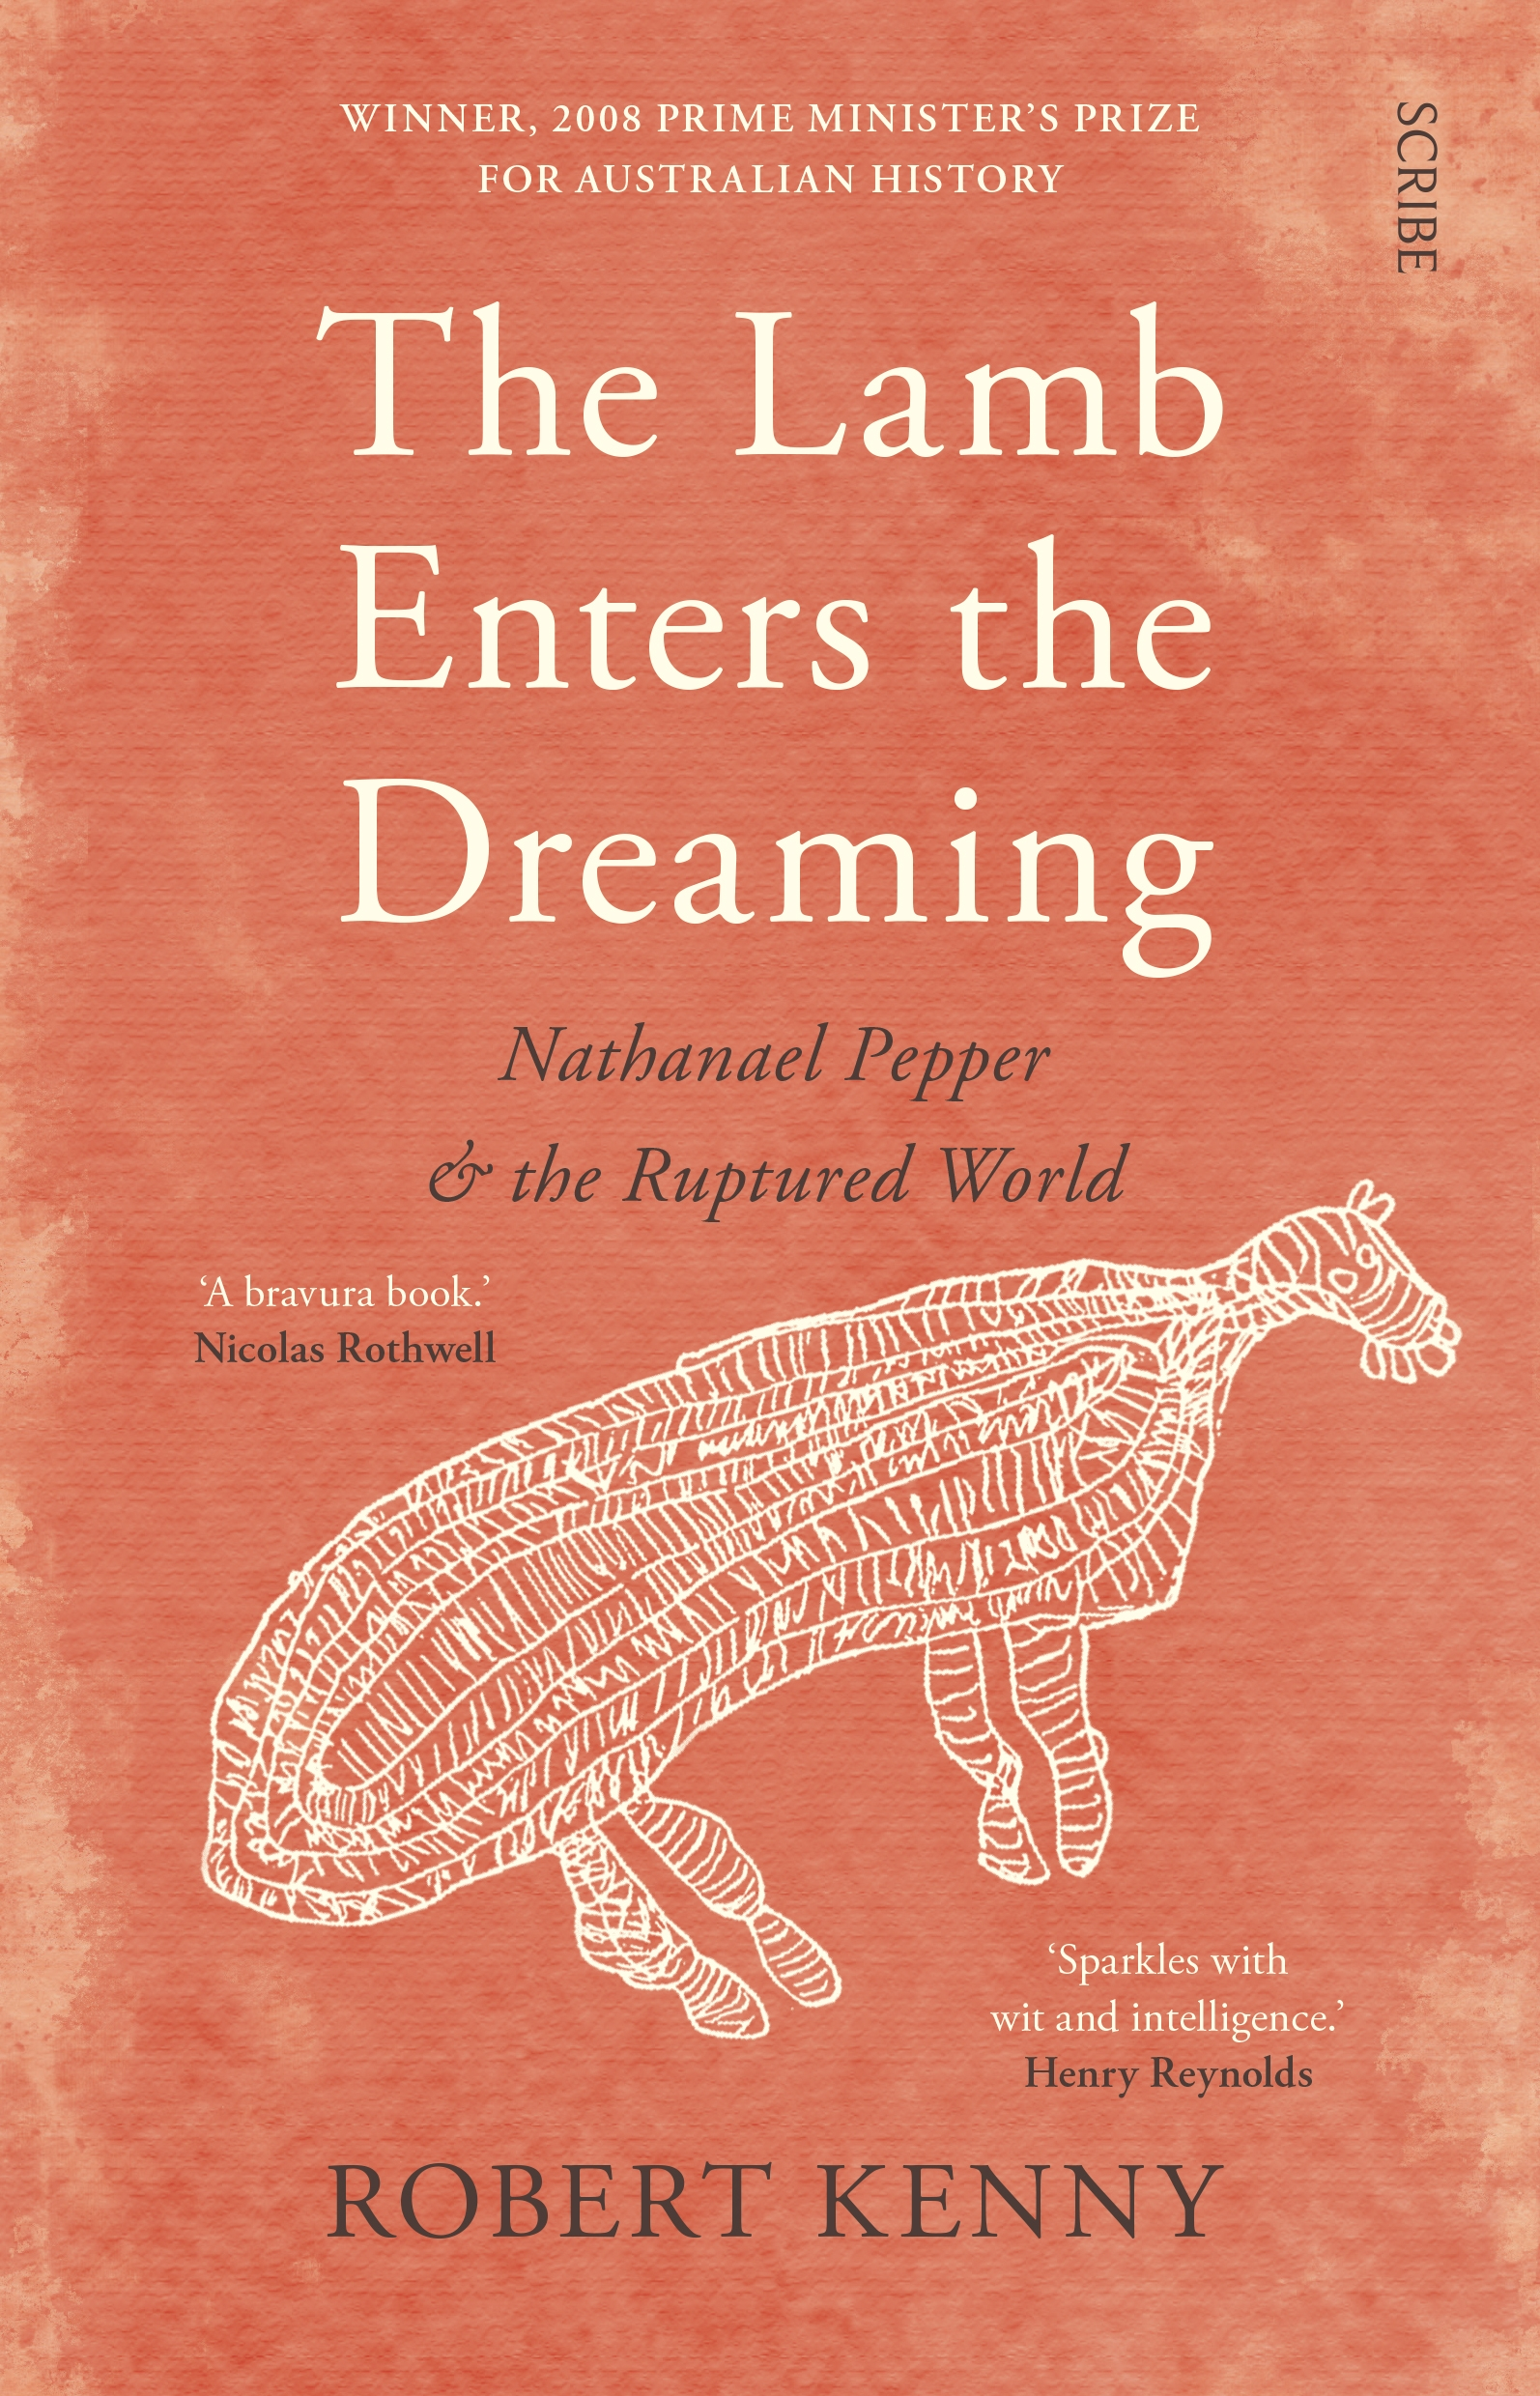 Book Cover: The Lamb Enters the Dreaming: Nathanael Pepper and the Ruptured World